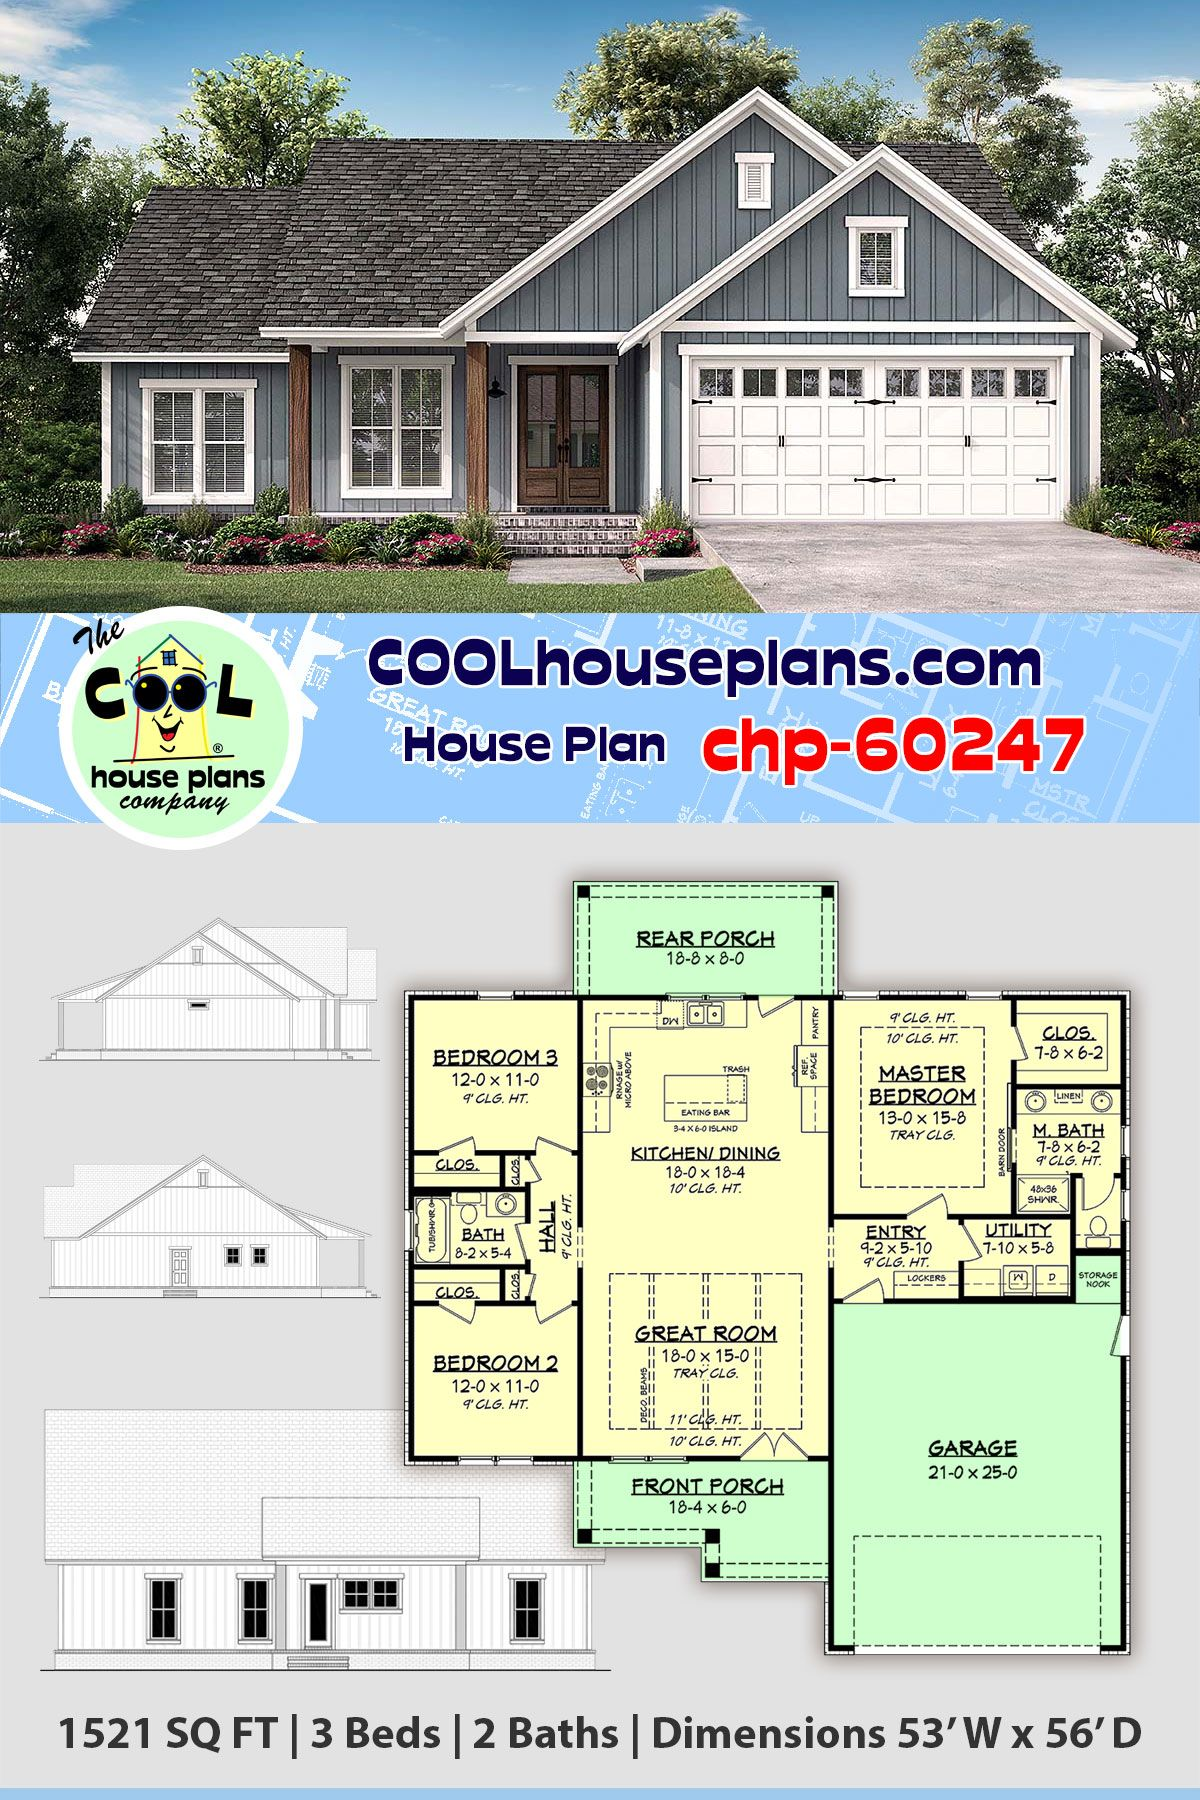 Traditional Home Plan Chp 60247 1521 Sq Ft 3 Bedrooms 2